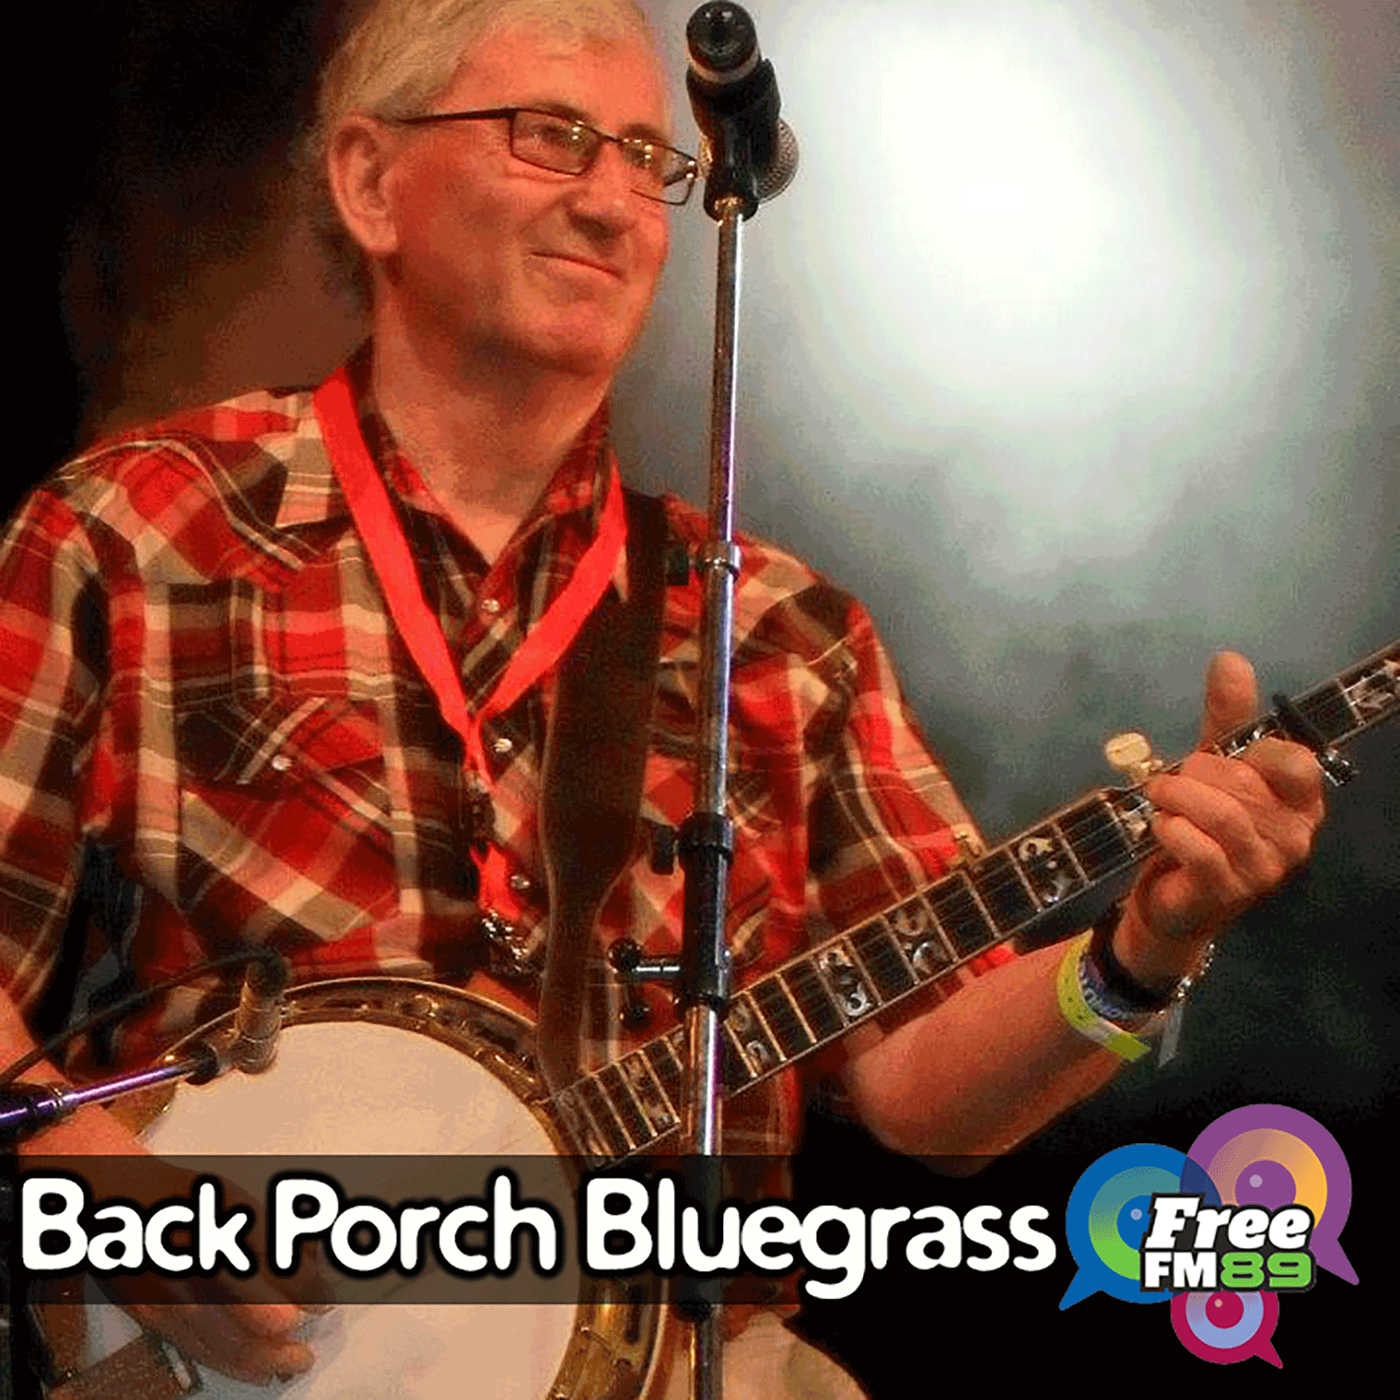 Back Porch Bluegrass - 26-01-2021